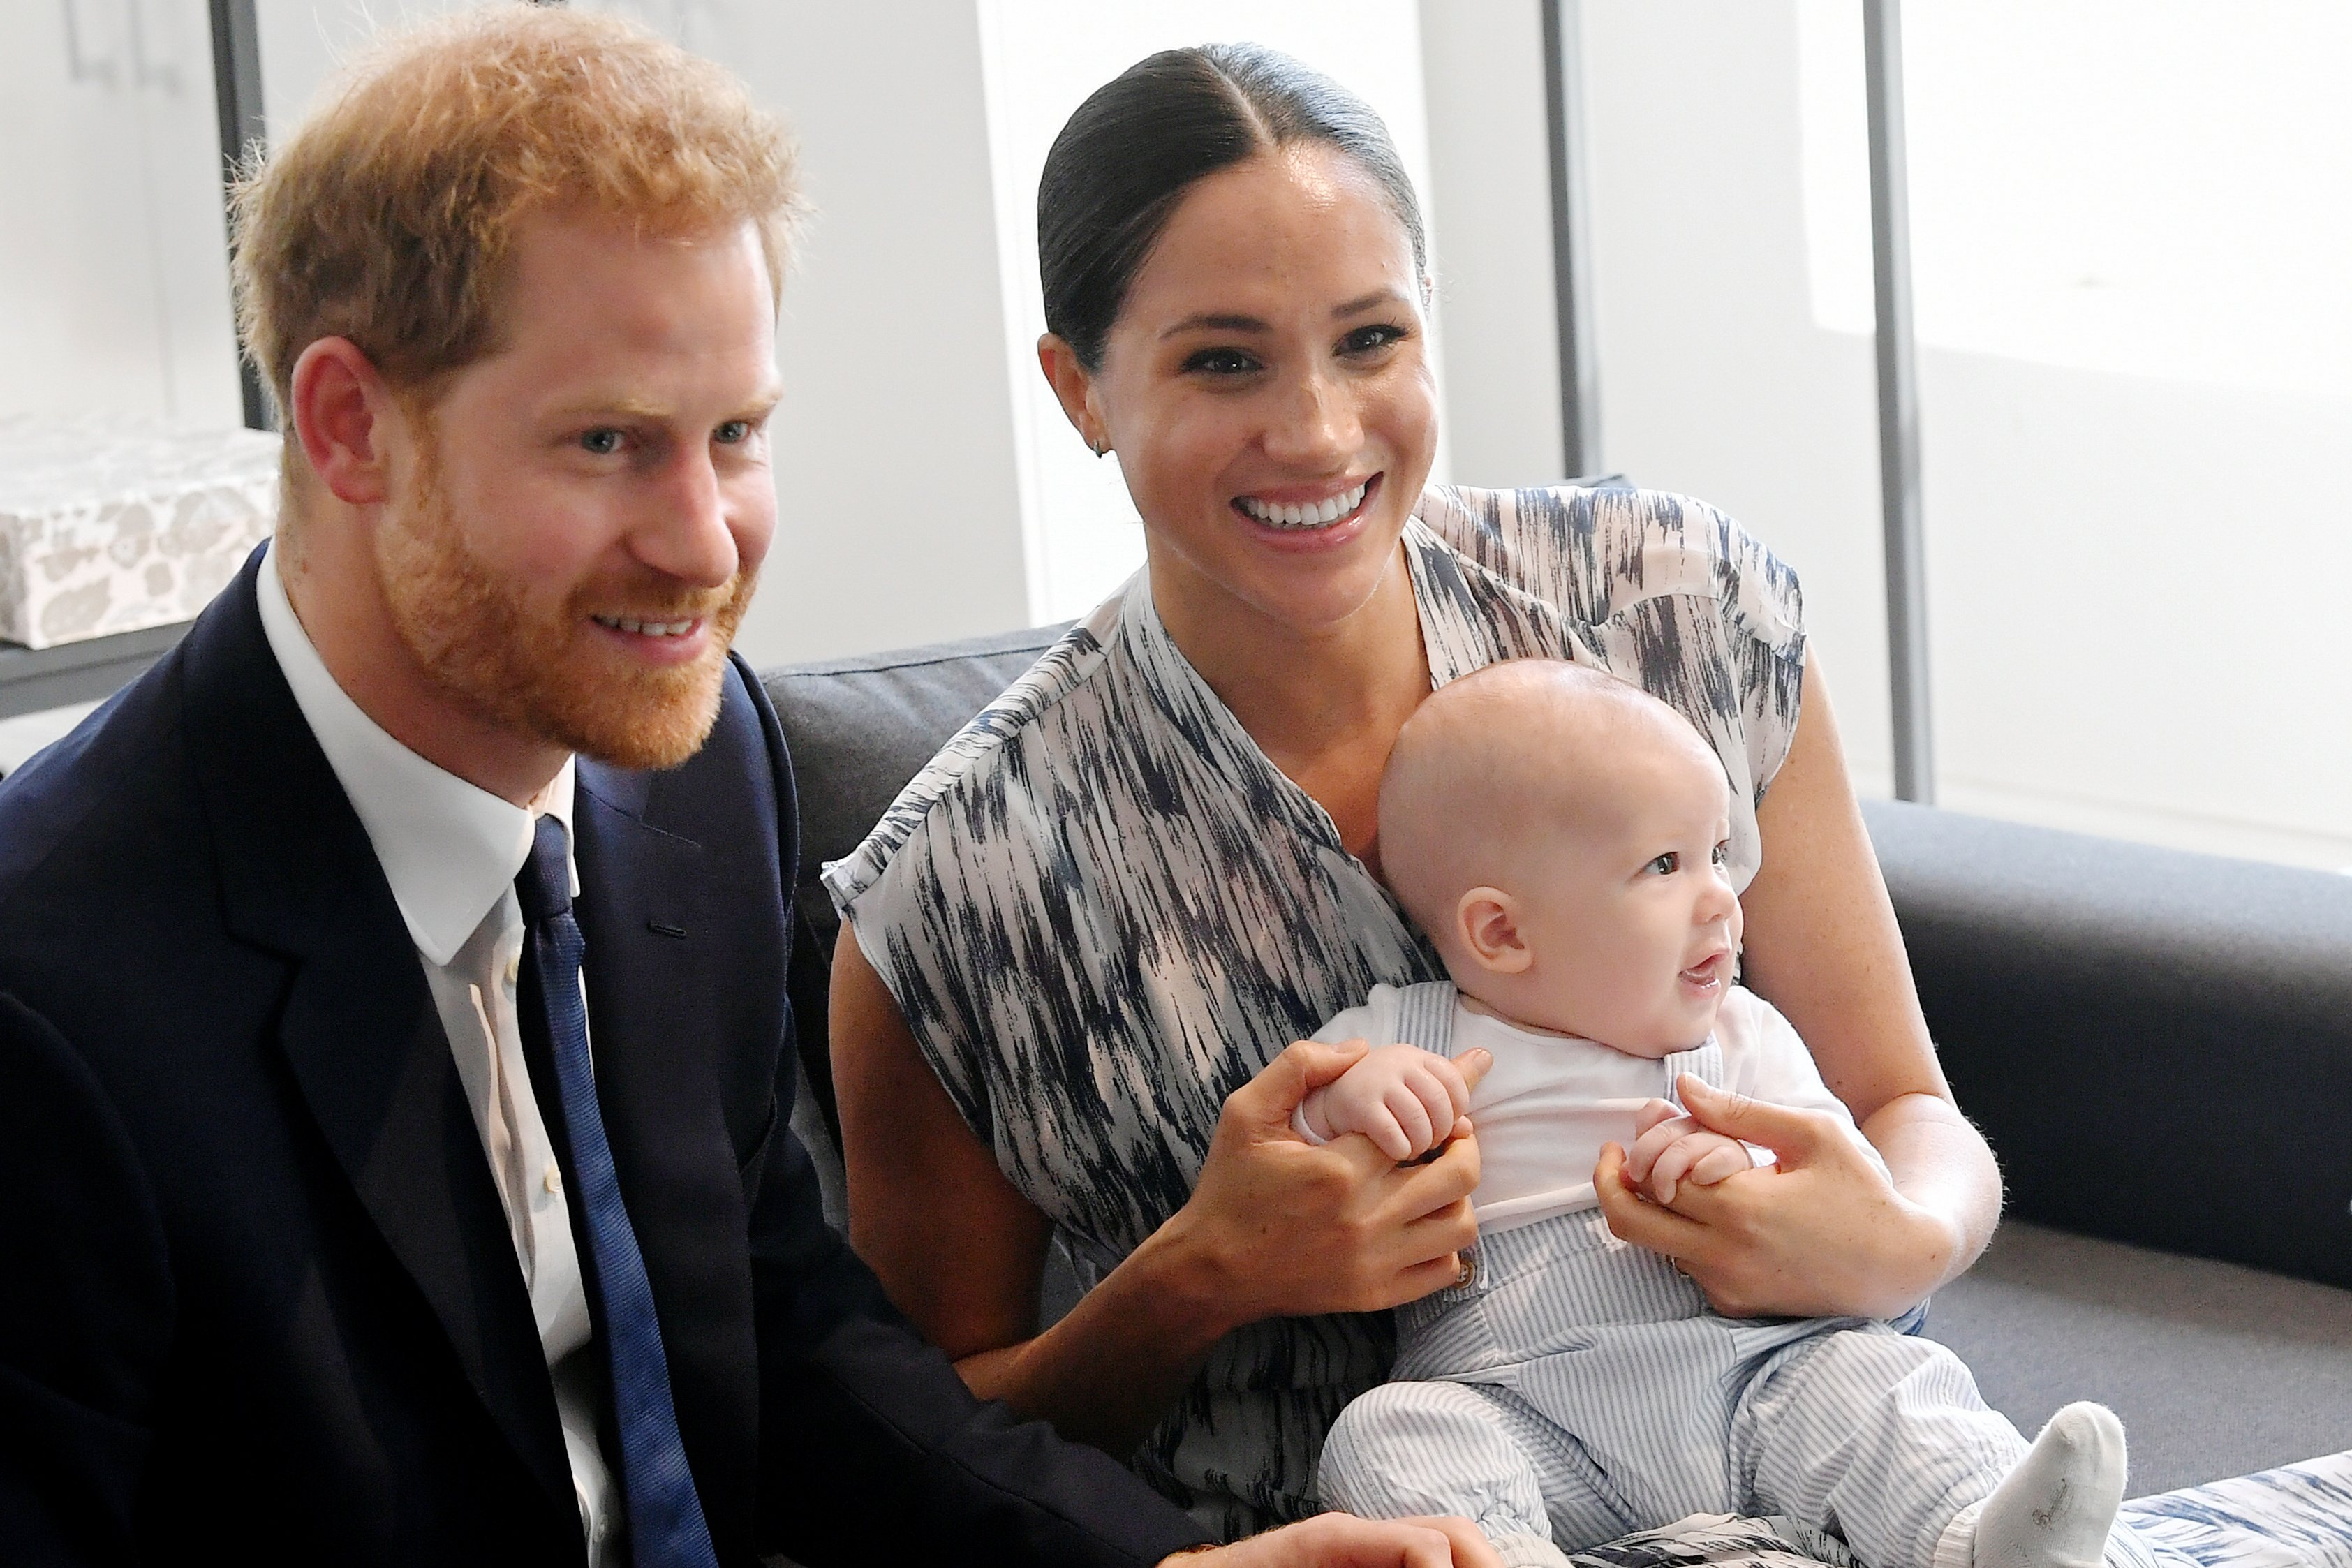 Meghan, Prinz Harry und Baby Archie, Südafrika, 2019 | Quelle: Getty Images